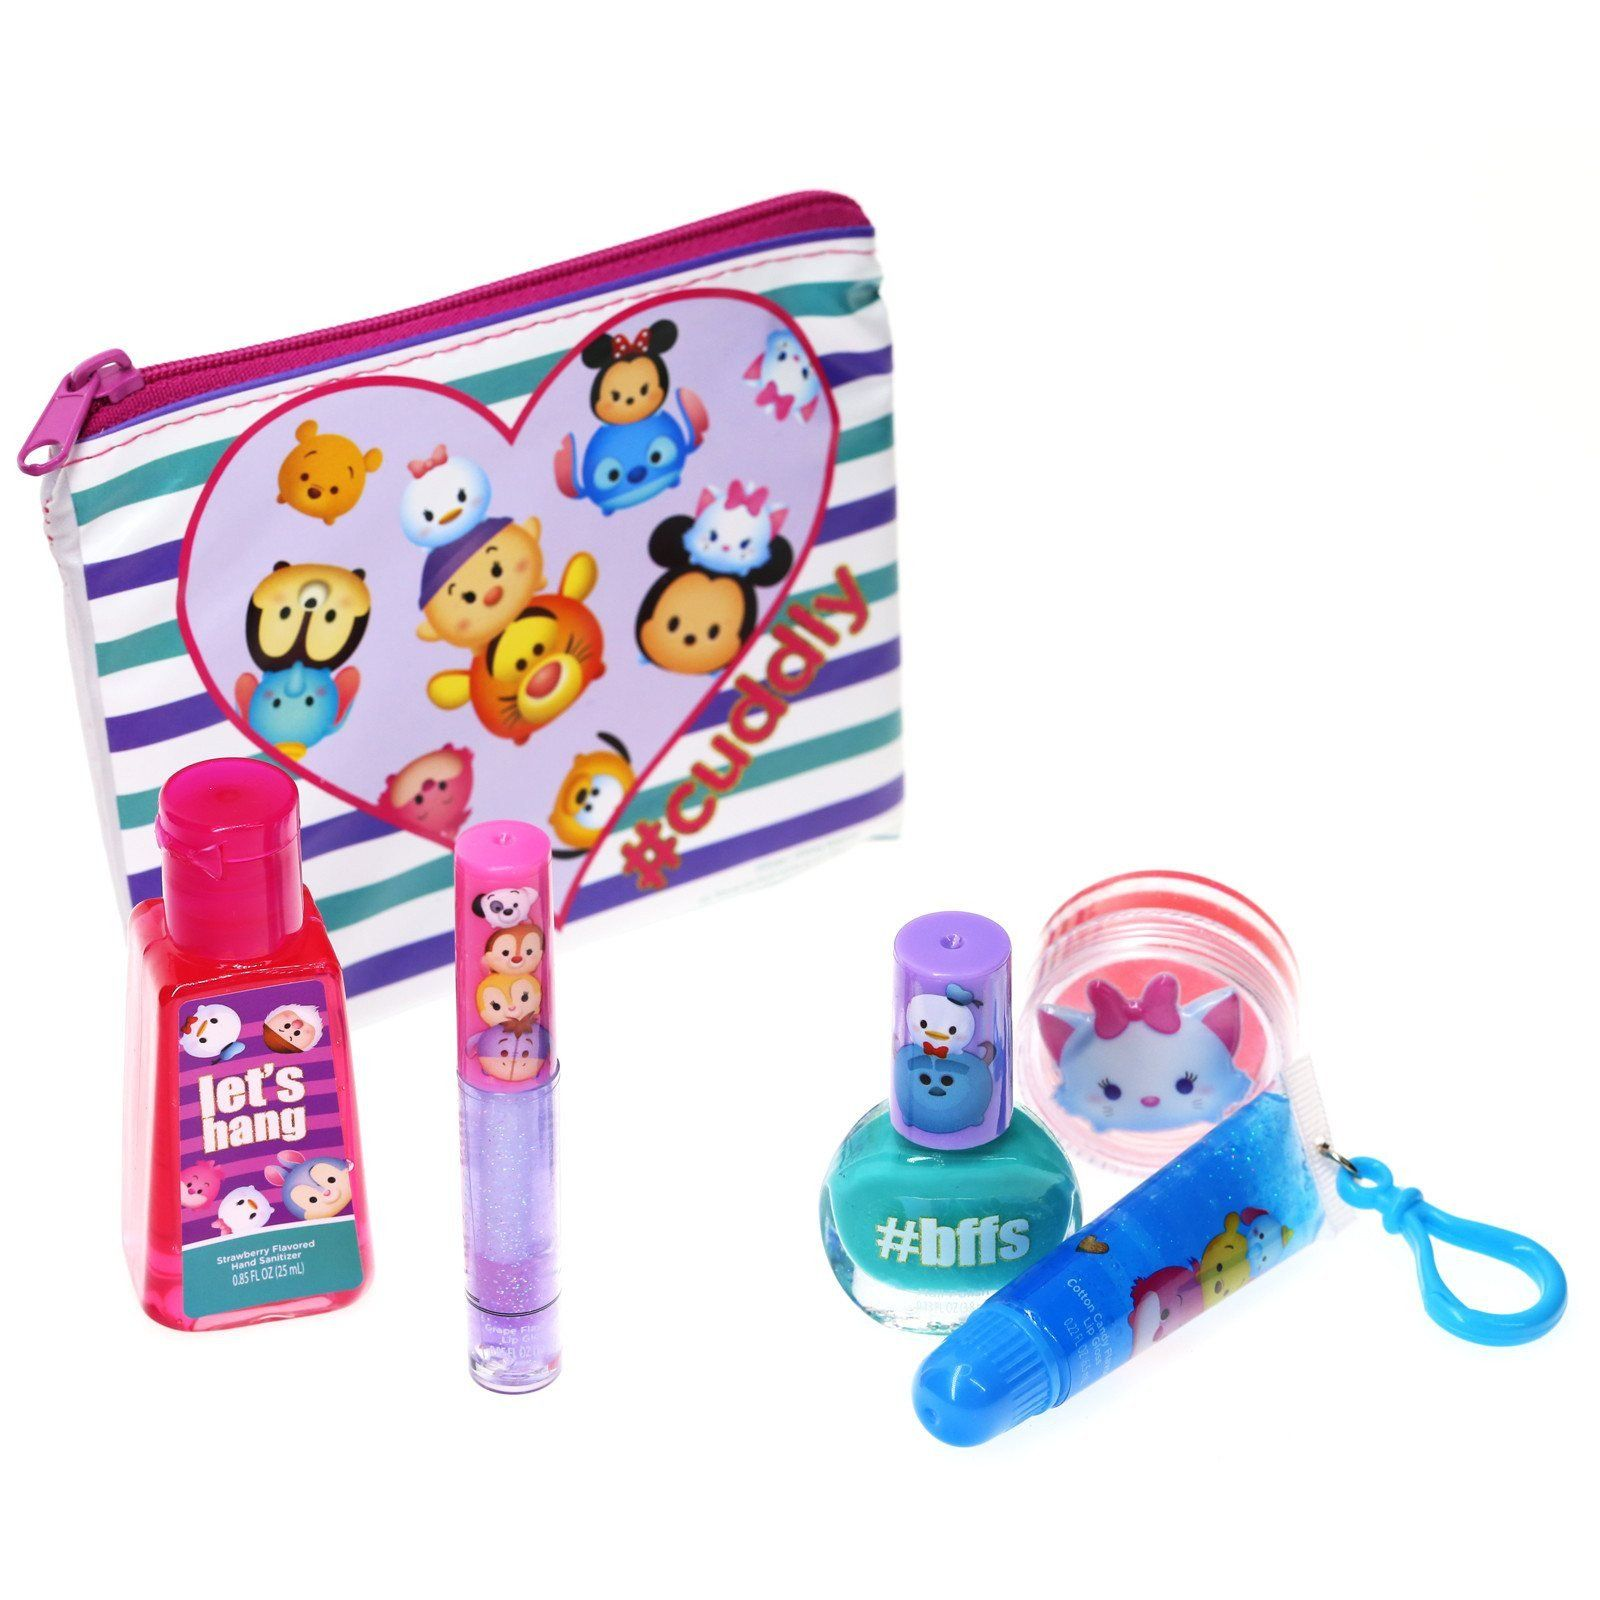 Tsum Tsum Ready Set Go Cosmetic Set Cosmetic Sets Beauty Kit